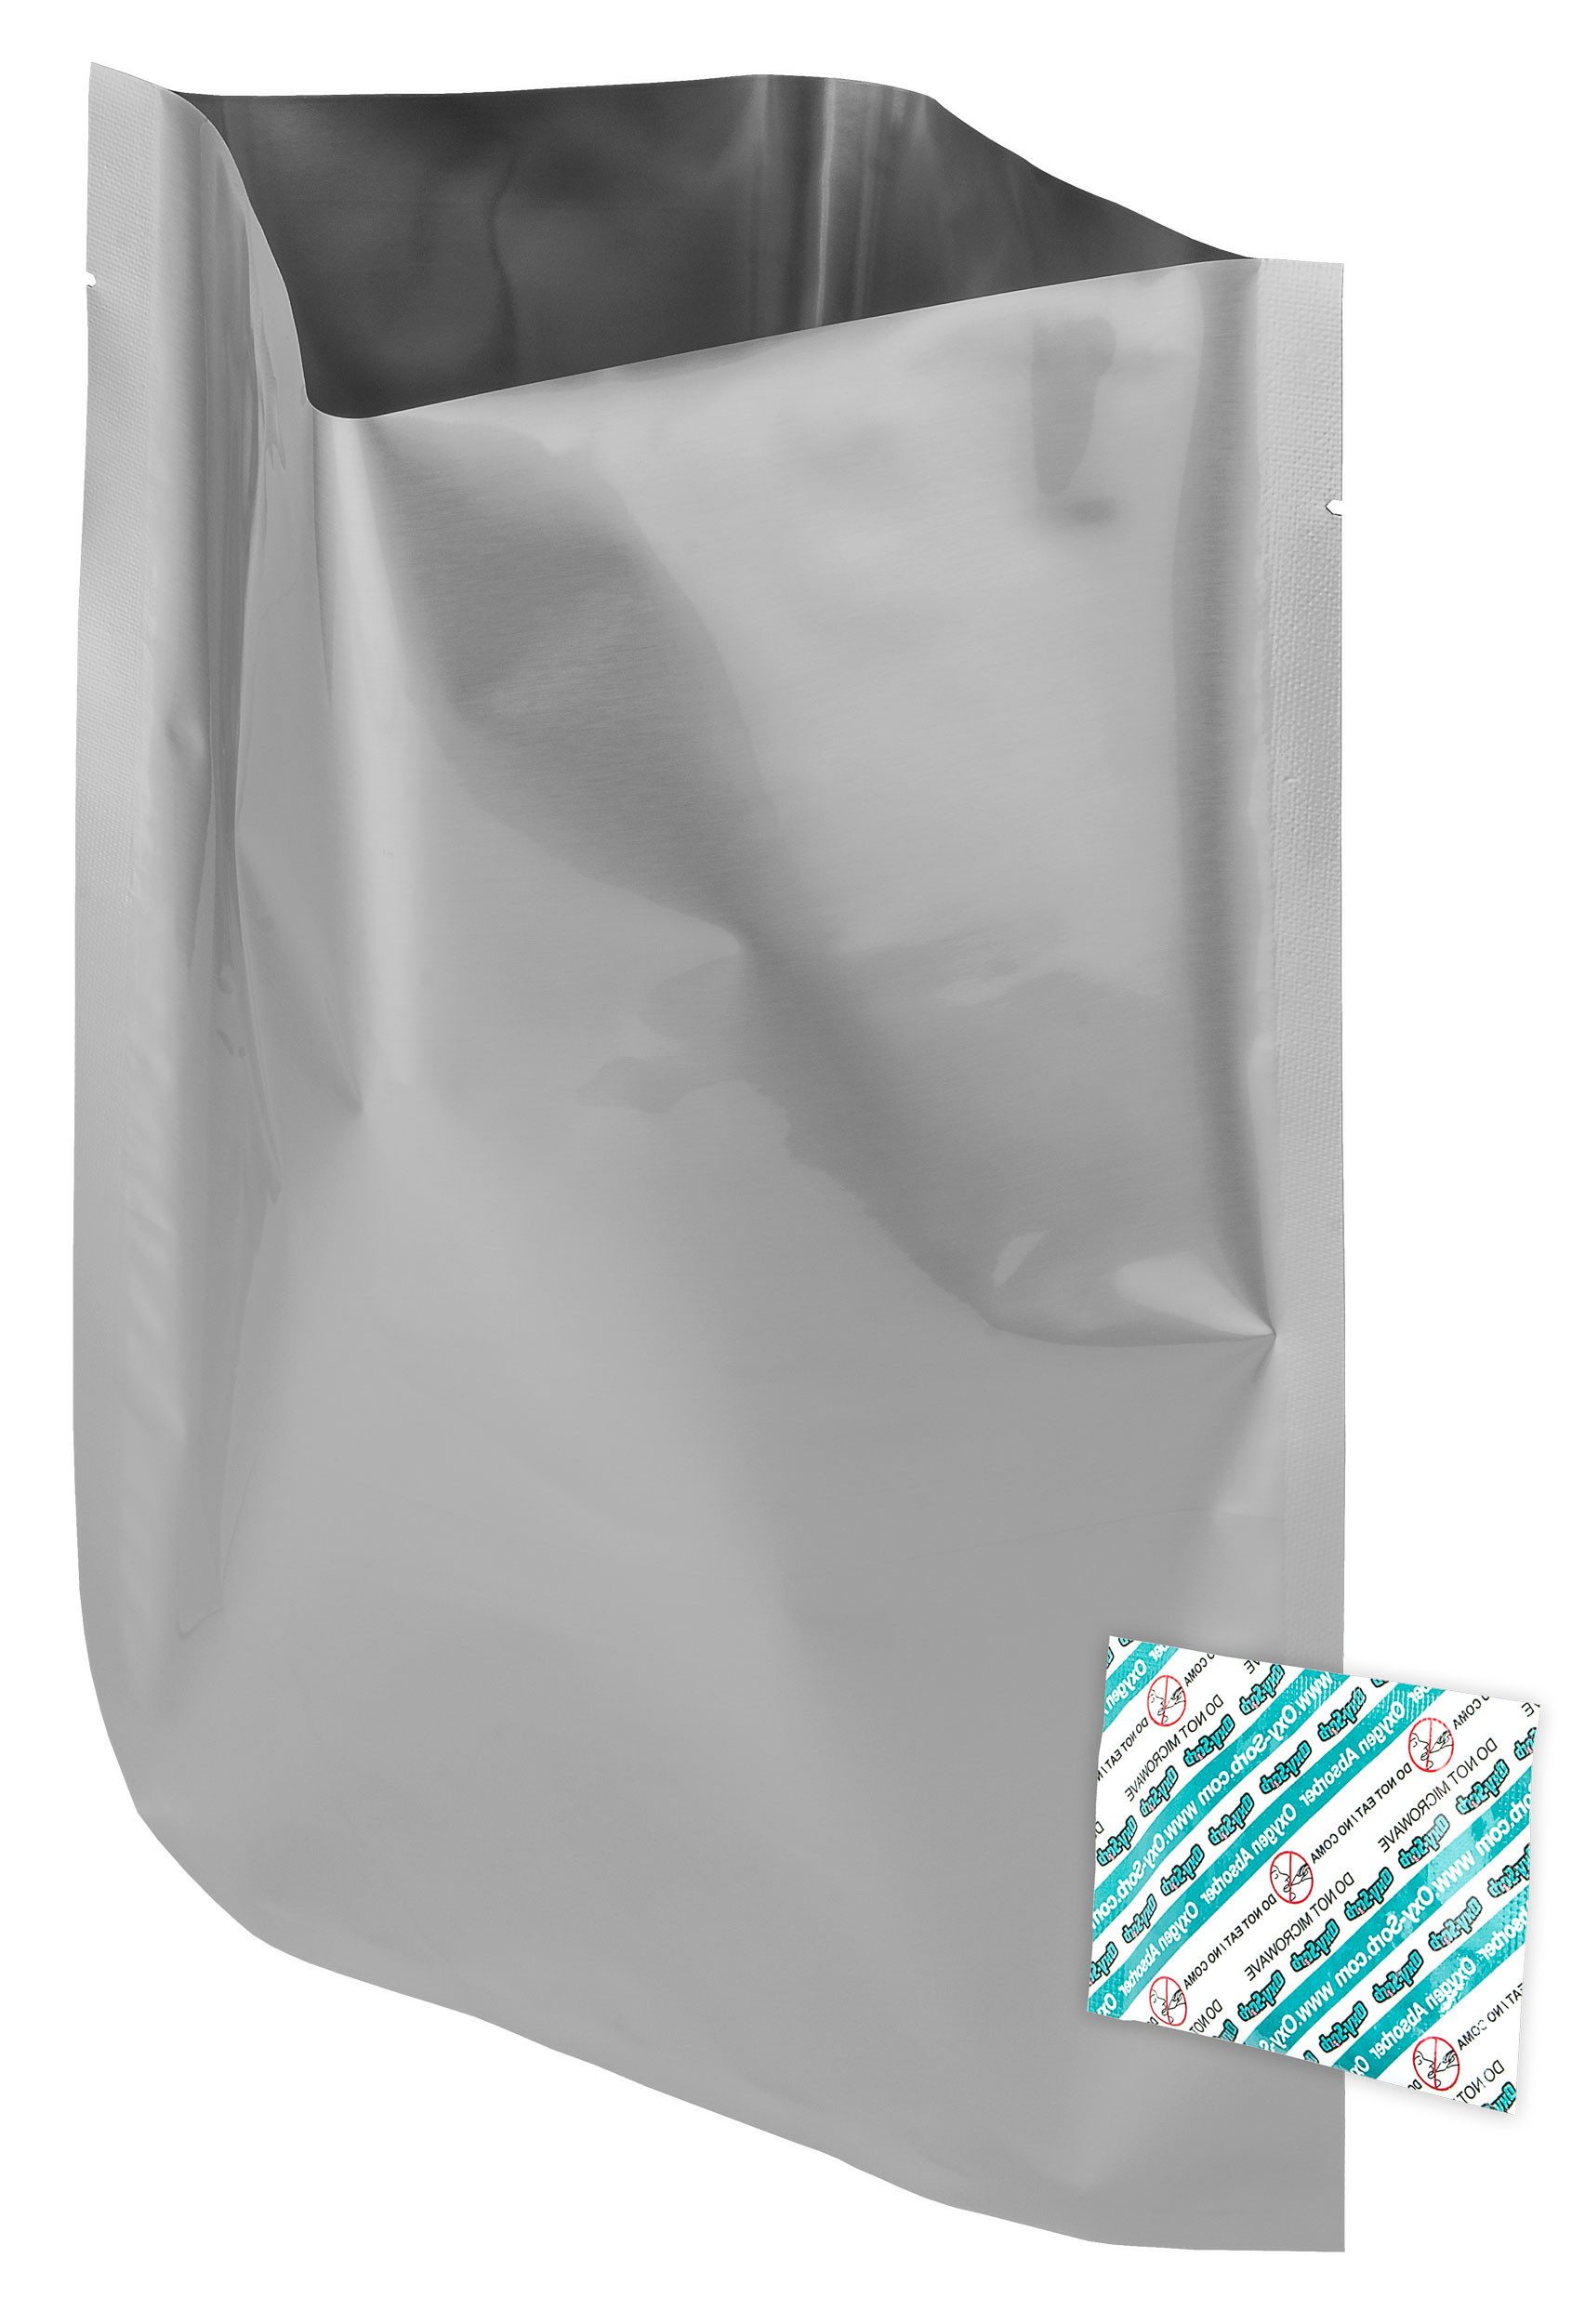 """60 - 1 Gallon ShieldPro Mylar Bags (10""""x14"""") & 60 - 300cc Oxygen Absorbers (In packs of 20) For Dried Dehydrated and Long Term Food Storage - Food Survival"""